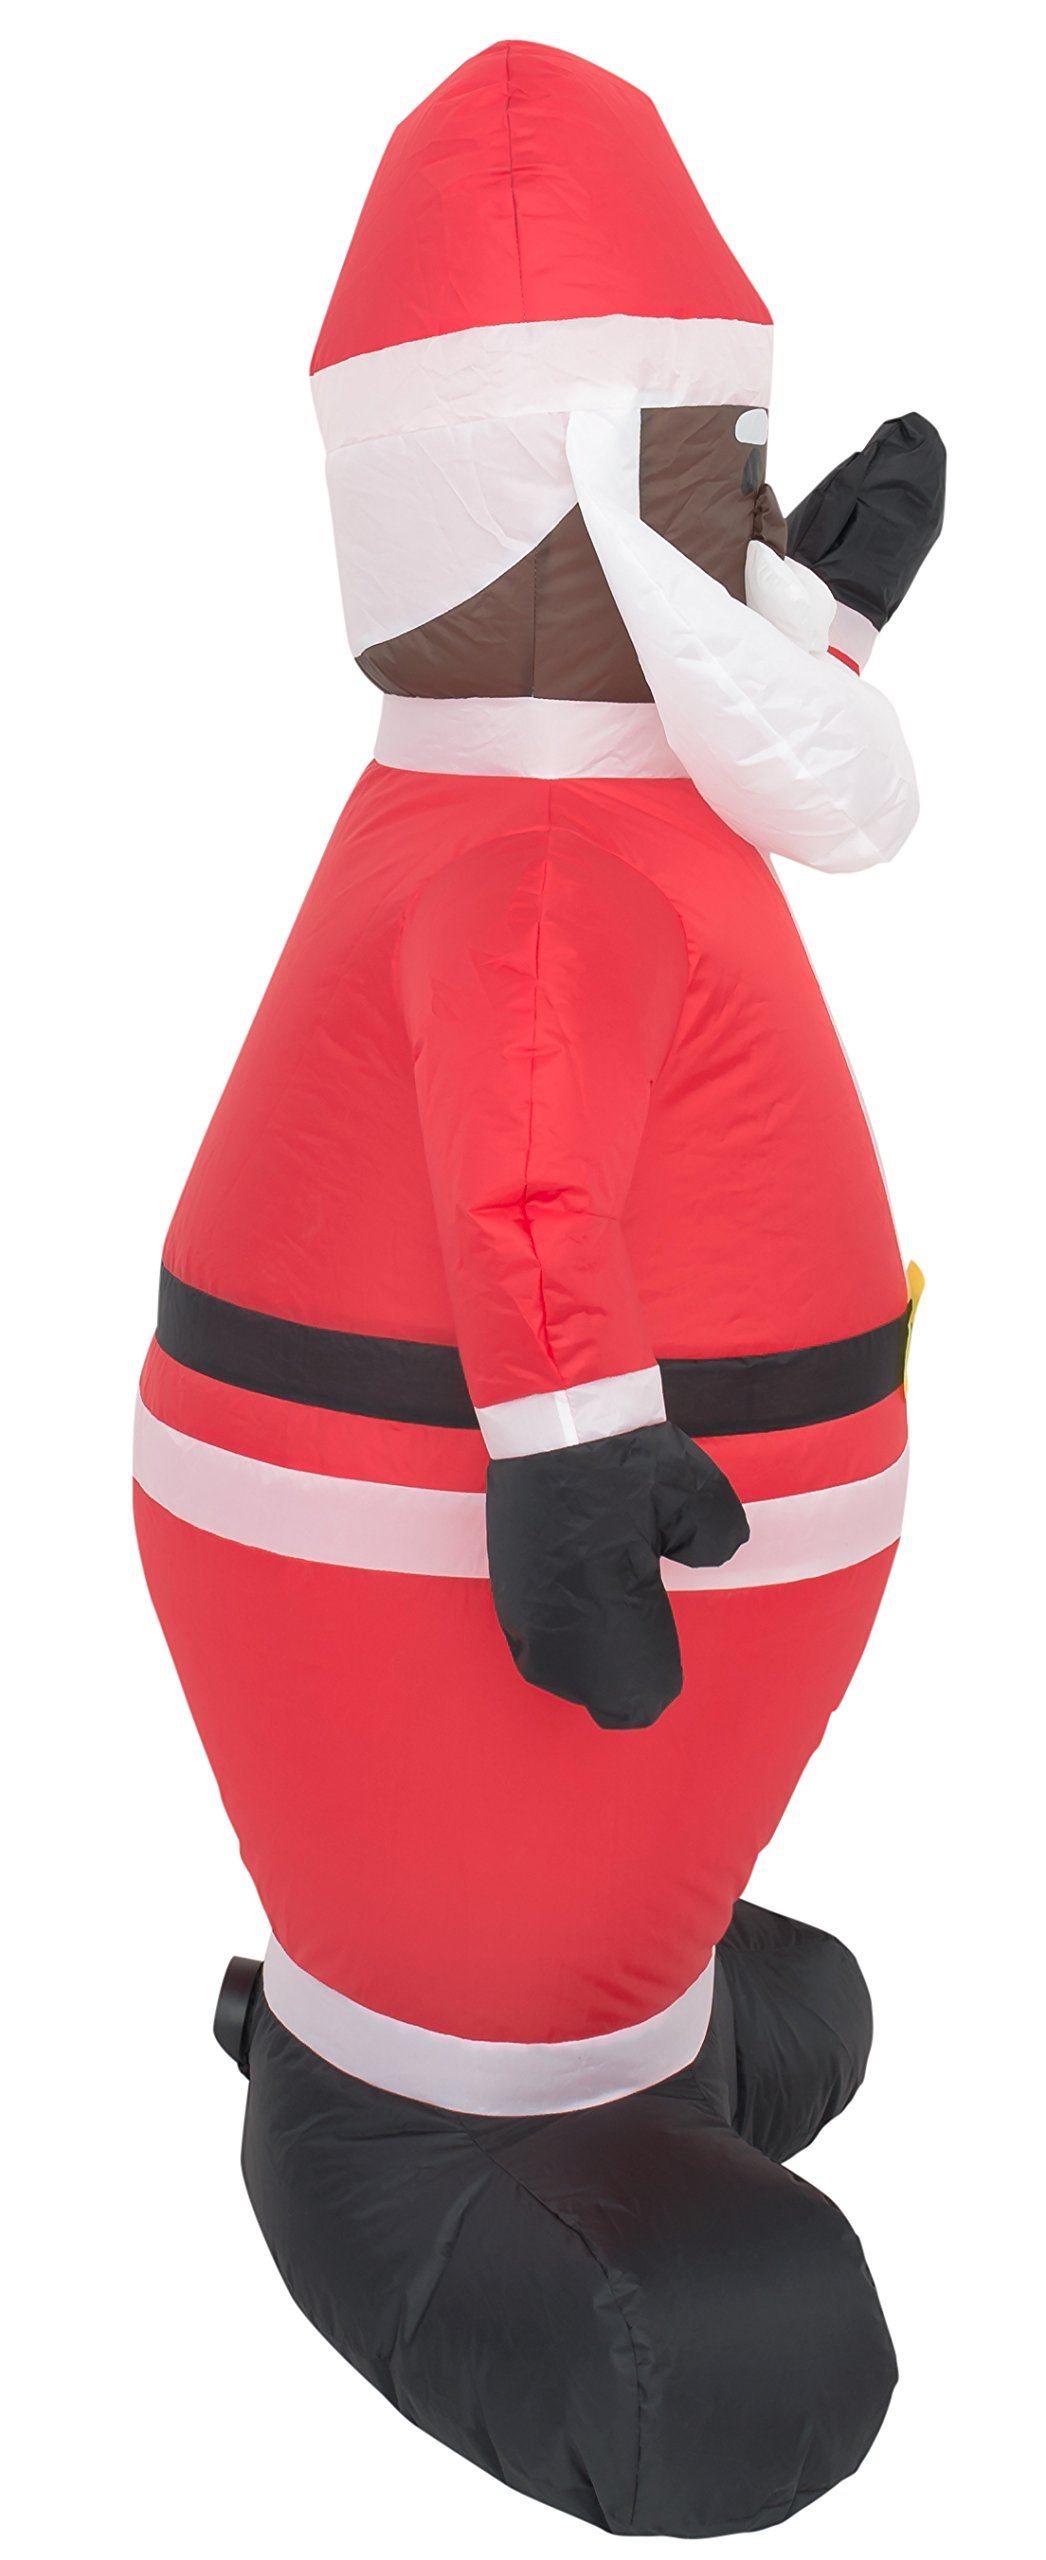 Costume Agent Inflatable Airblown Indoor and Outdoor Christmas Decoration (4 feet, Black Santa) by Costume Agent (Image #2)